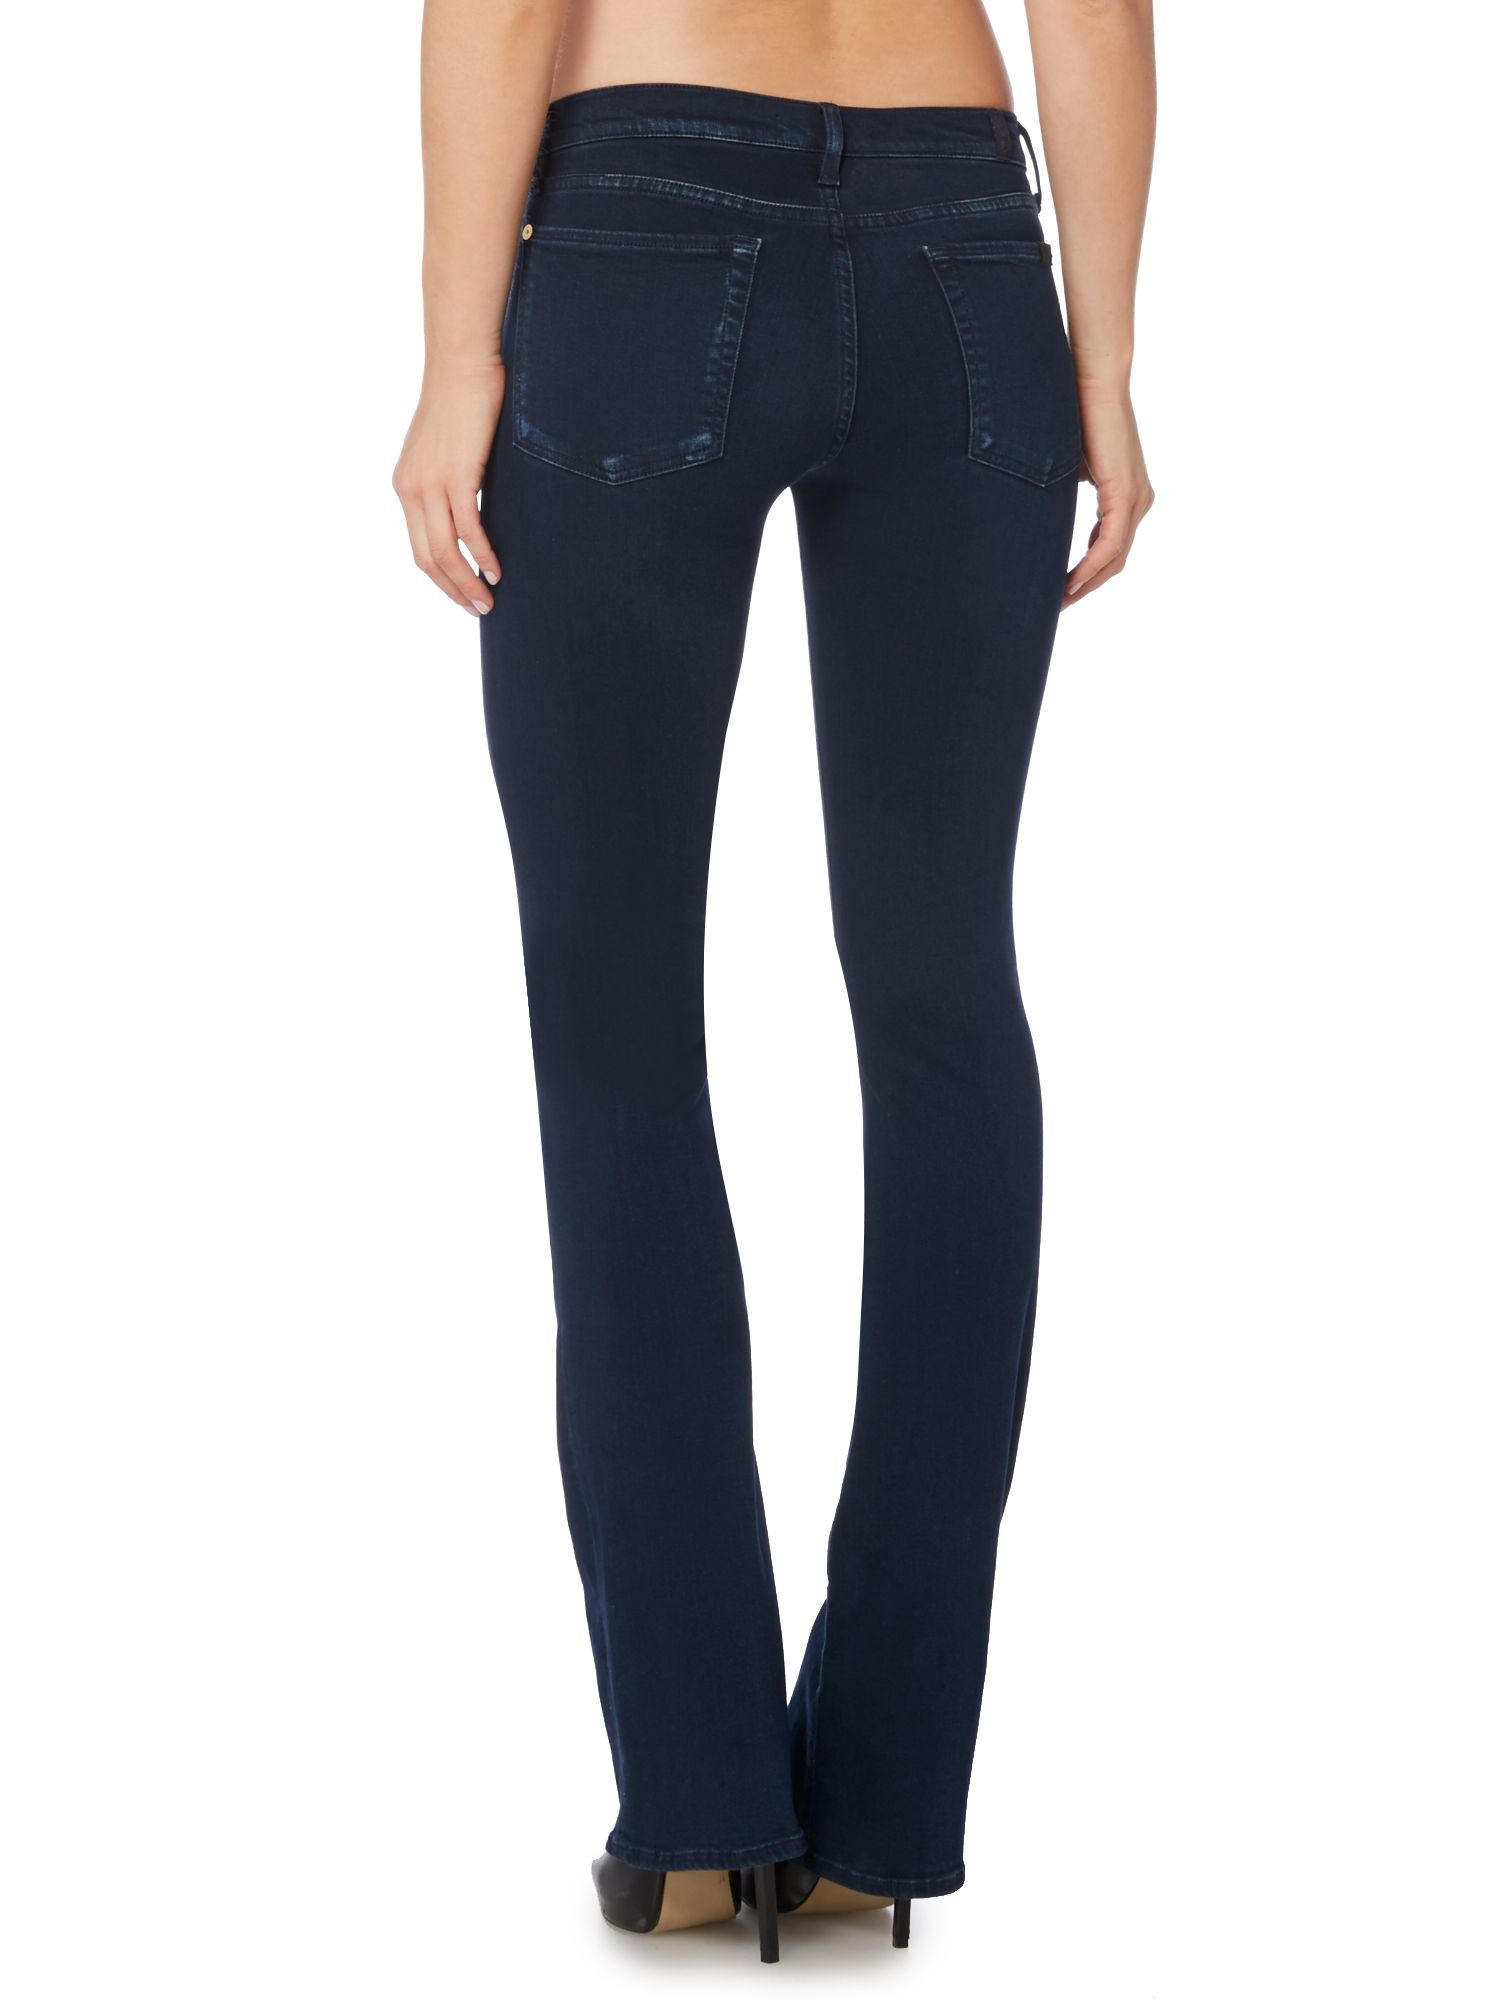 Lyst 7 For All Mankind Slim Illusion Skinny Bootcut Jean